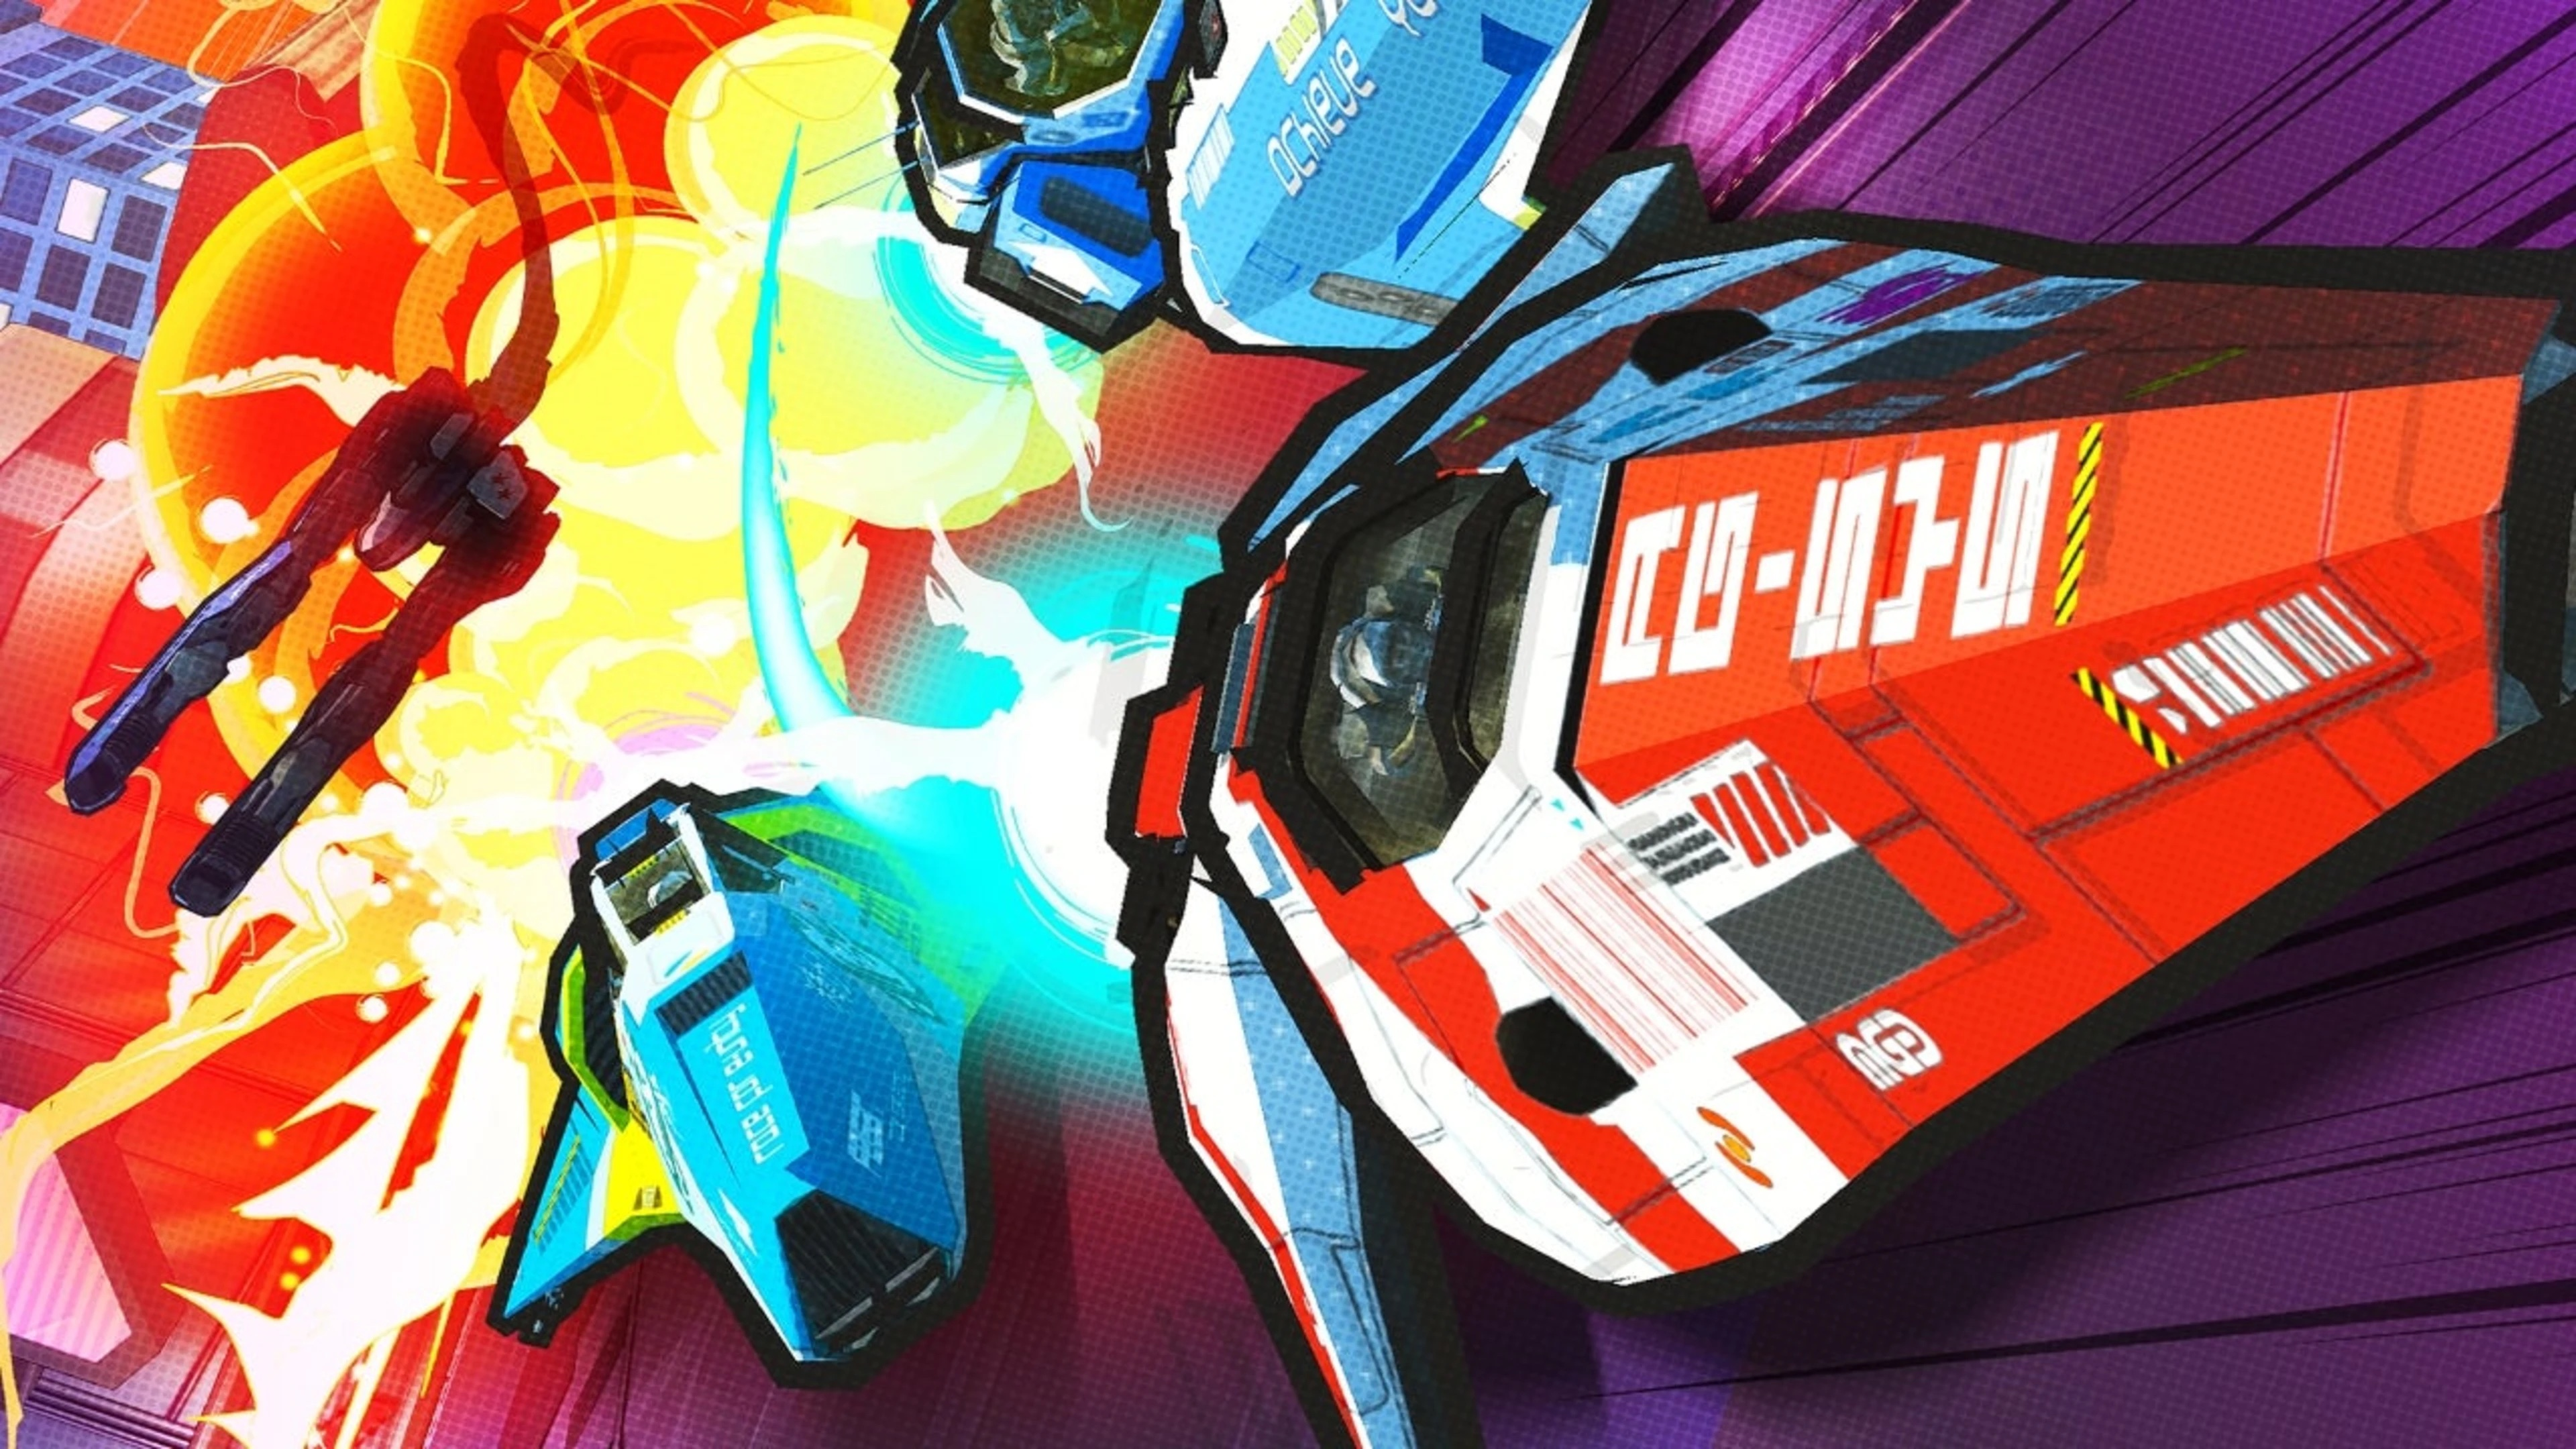 Comic book-style artwork from Wipeout Rush, featuring classic hoverships